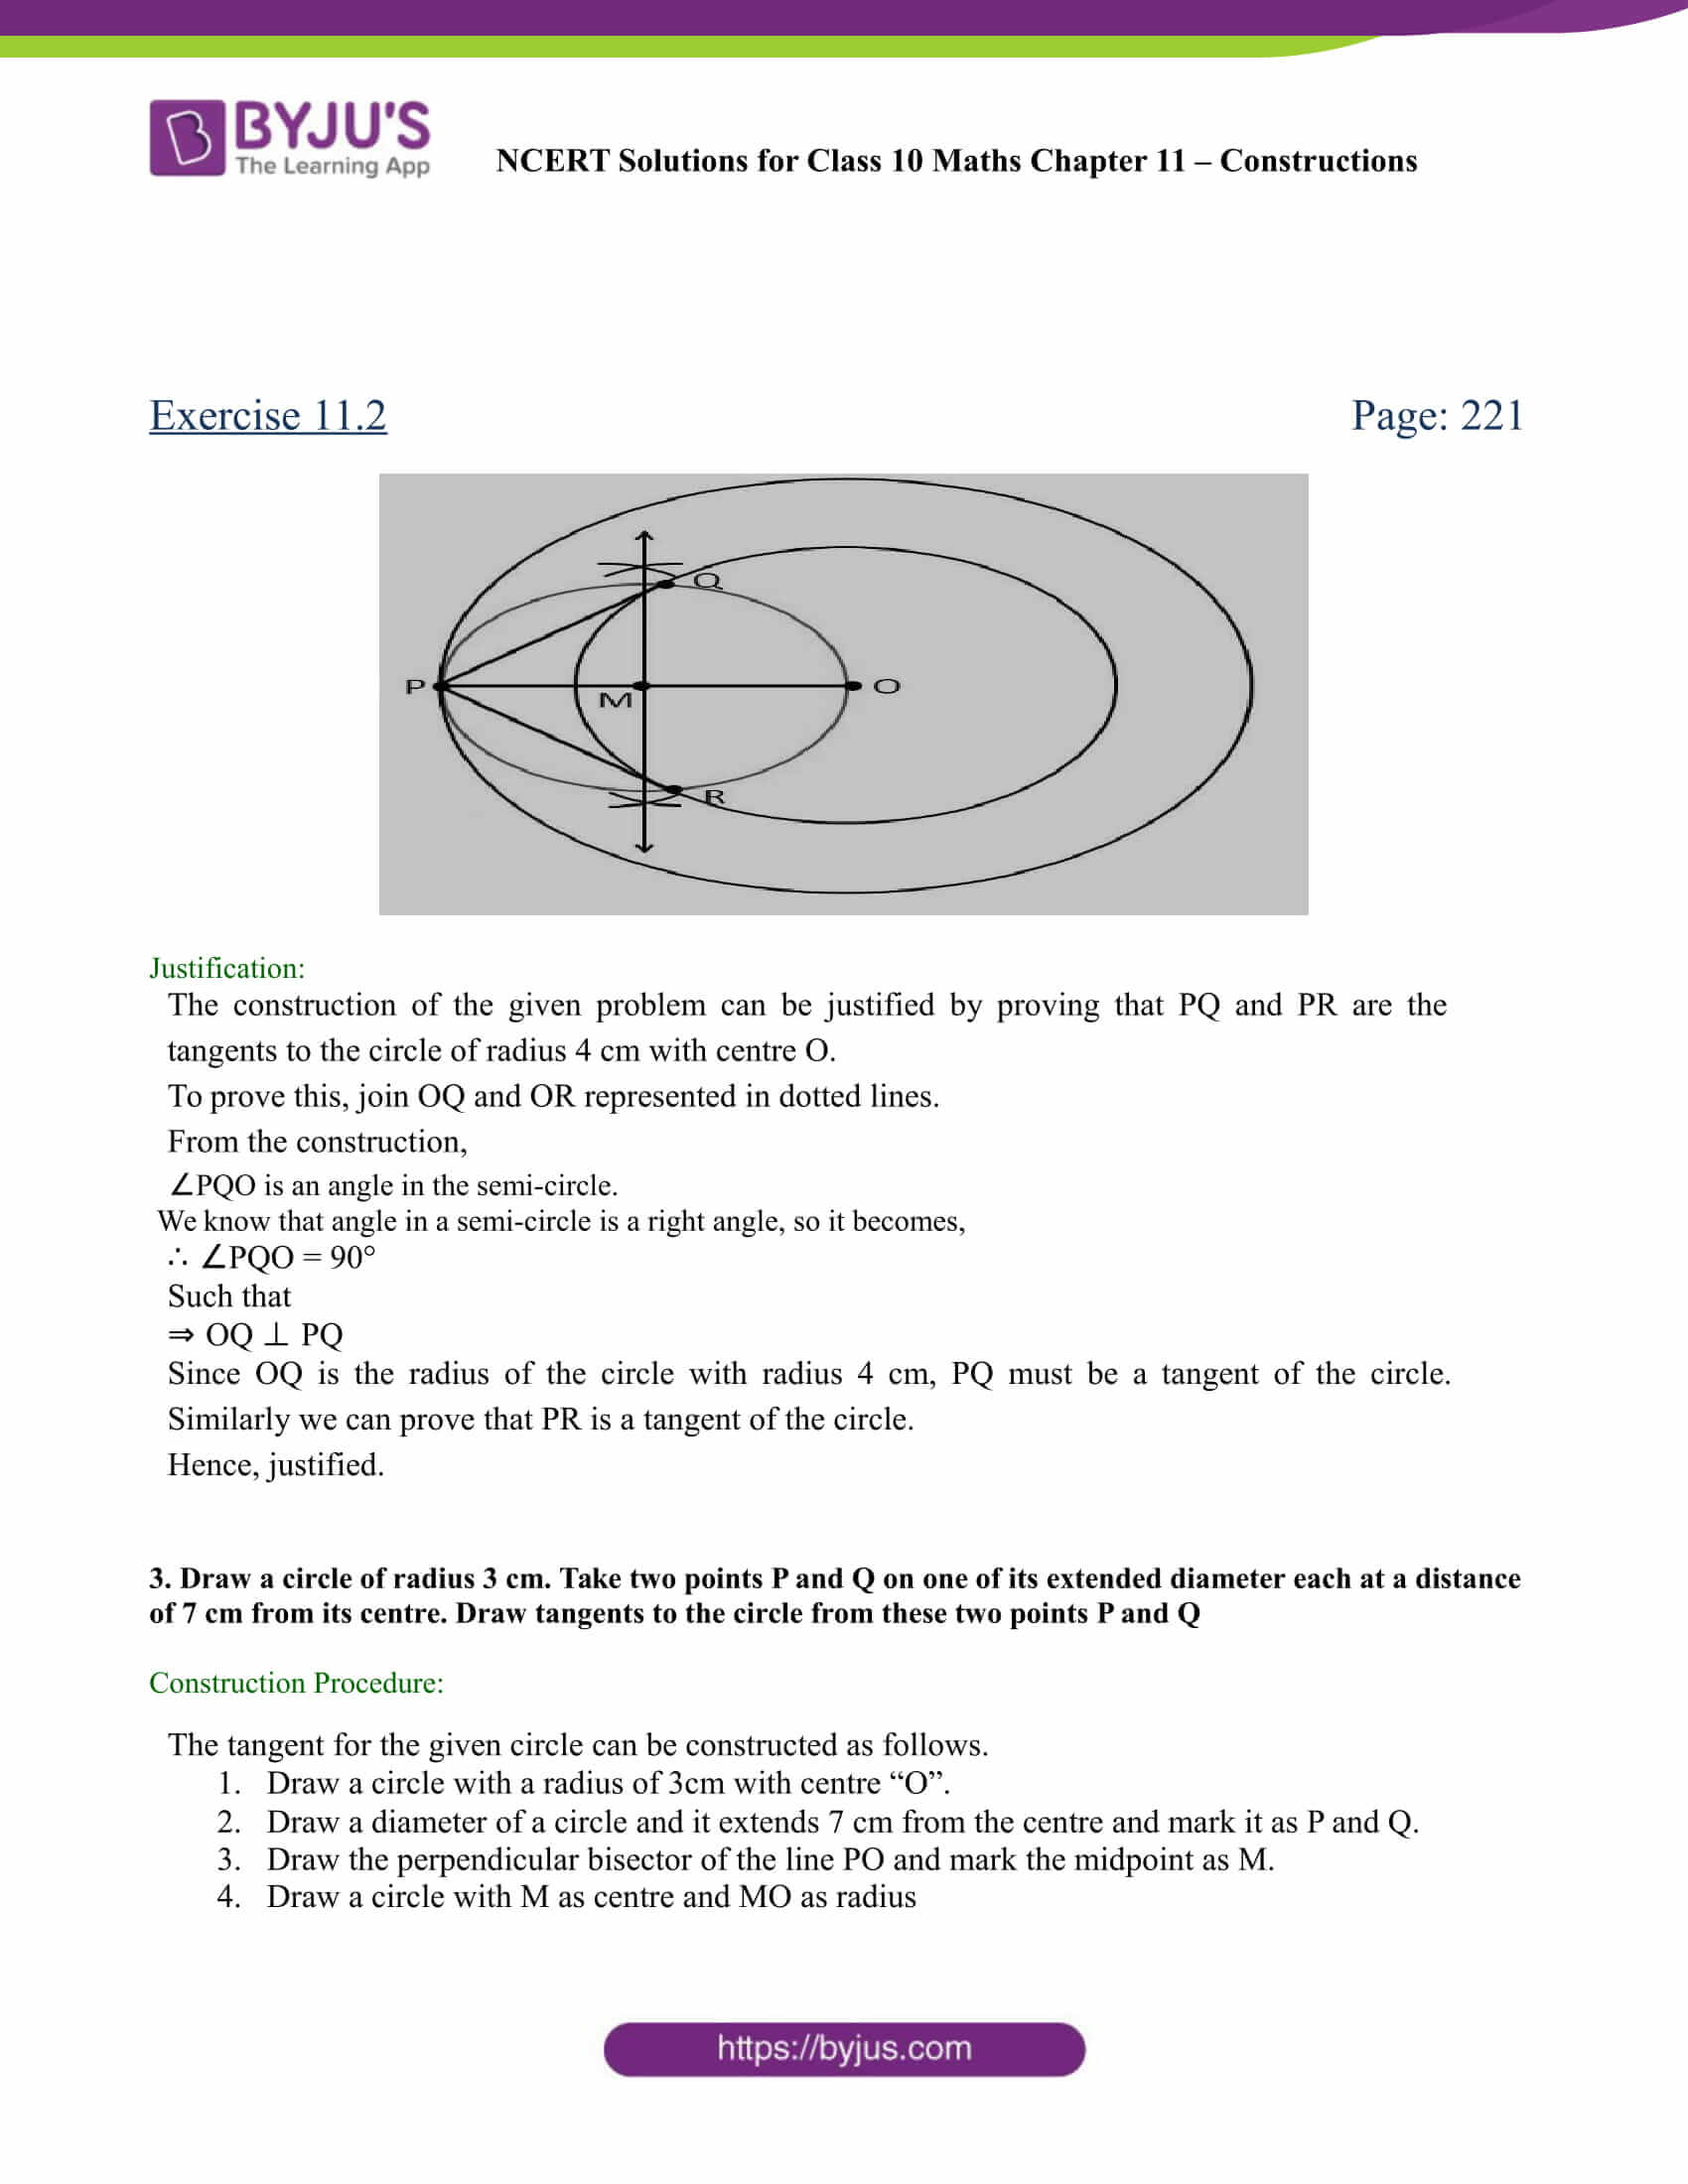 NCERT Solutions for class 10 chapter 11 Constructions Part 11